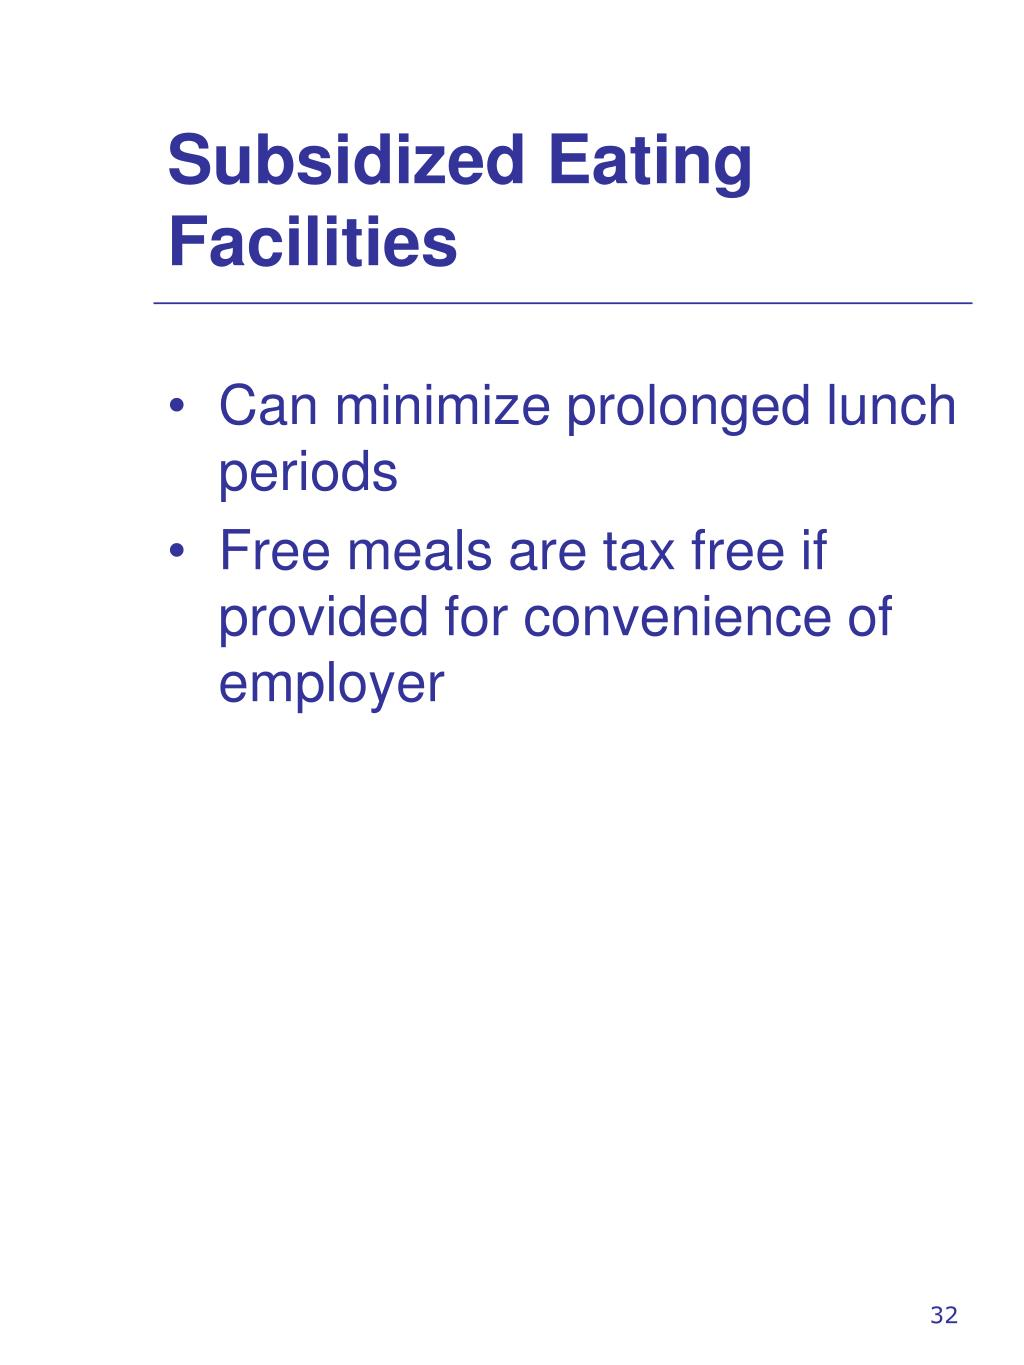 Subsidized Eating Facilities